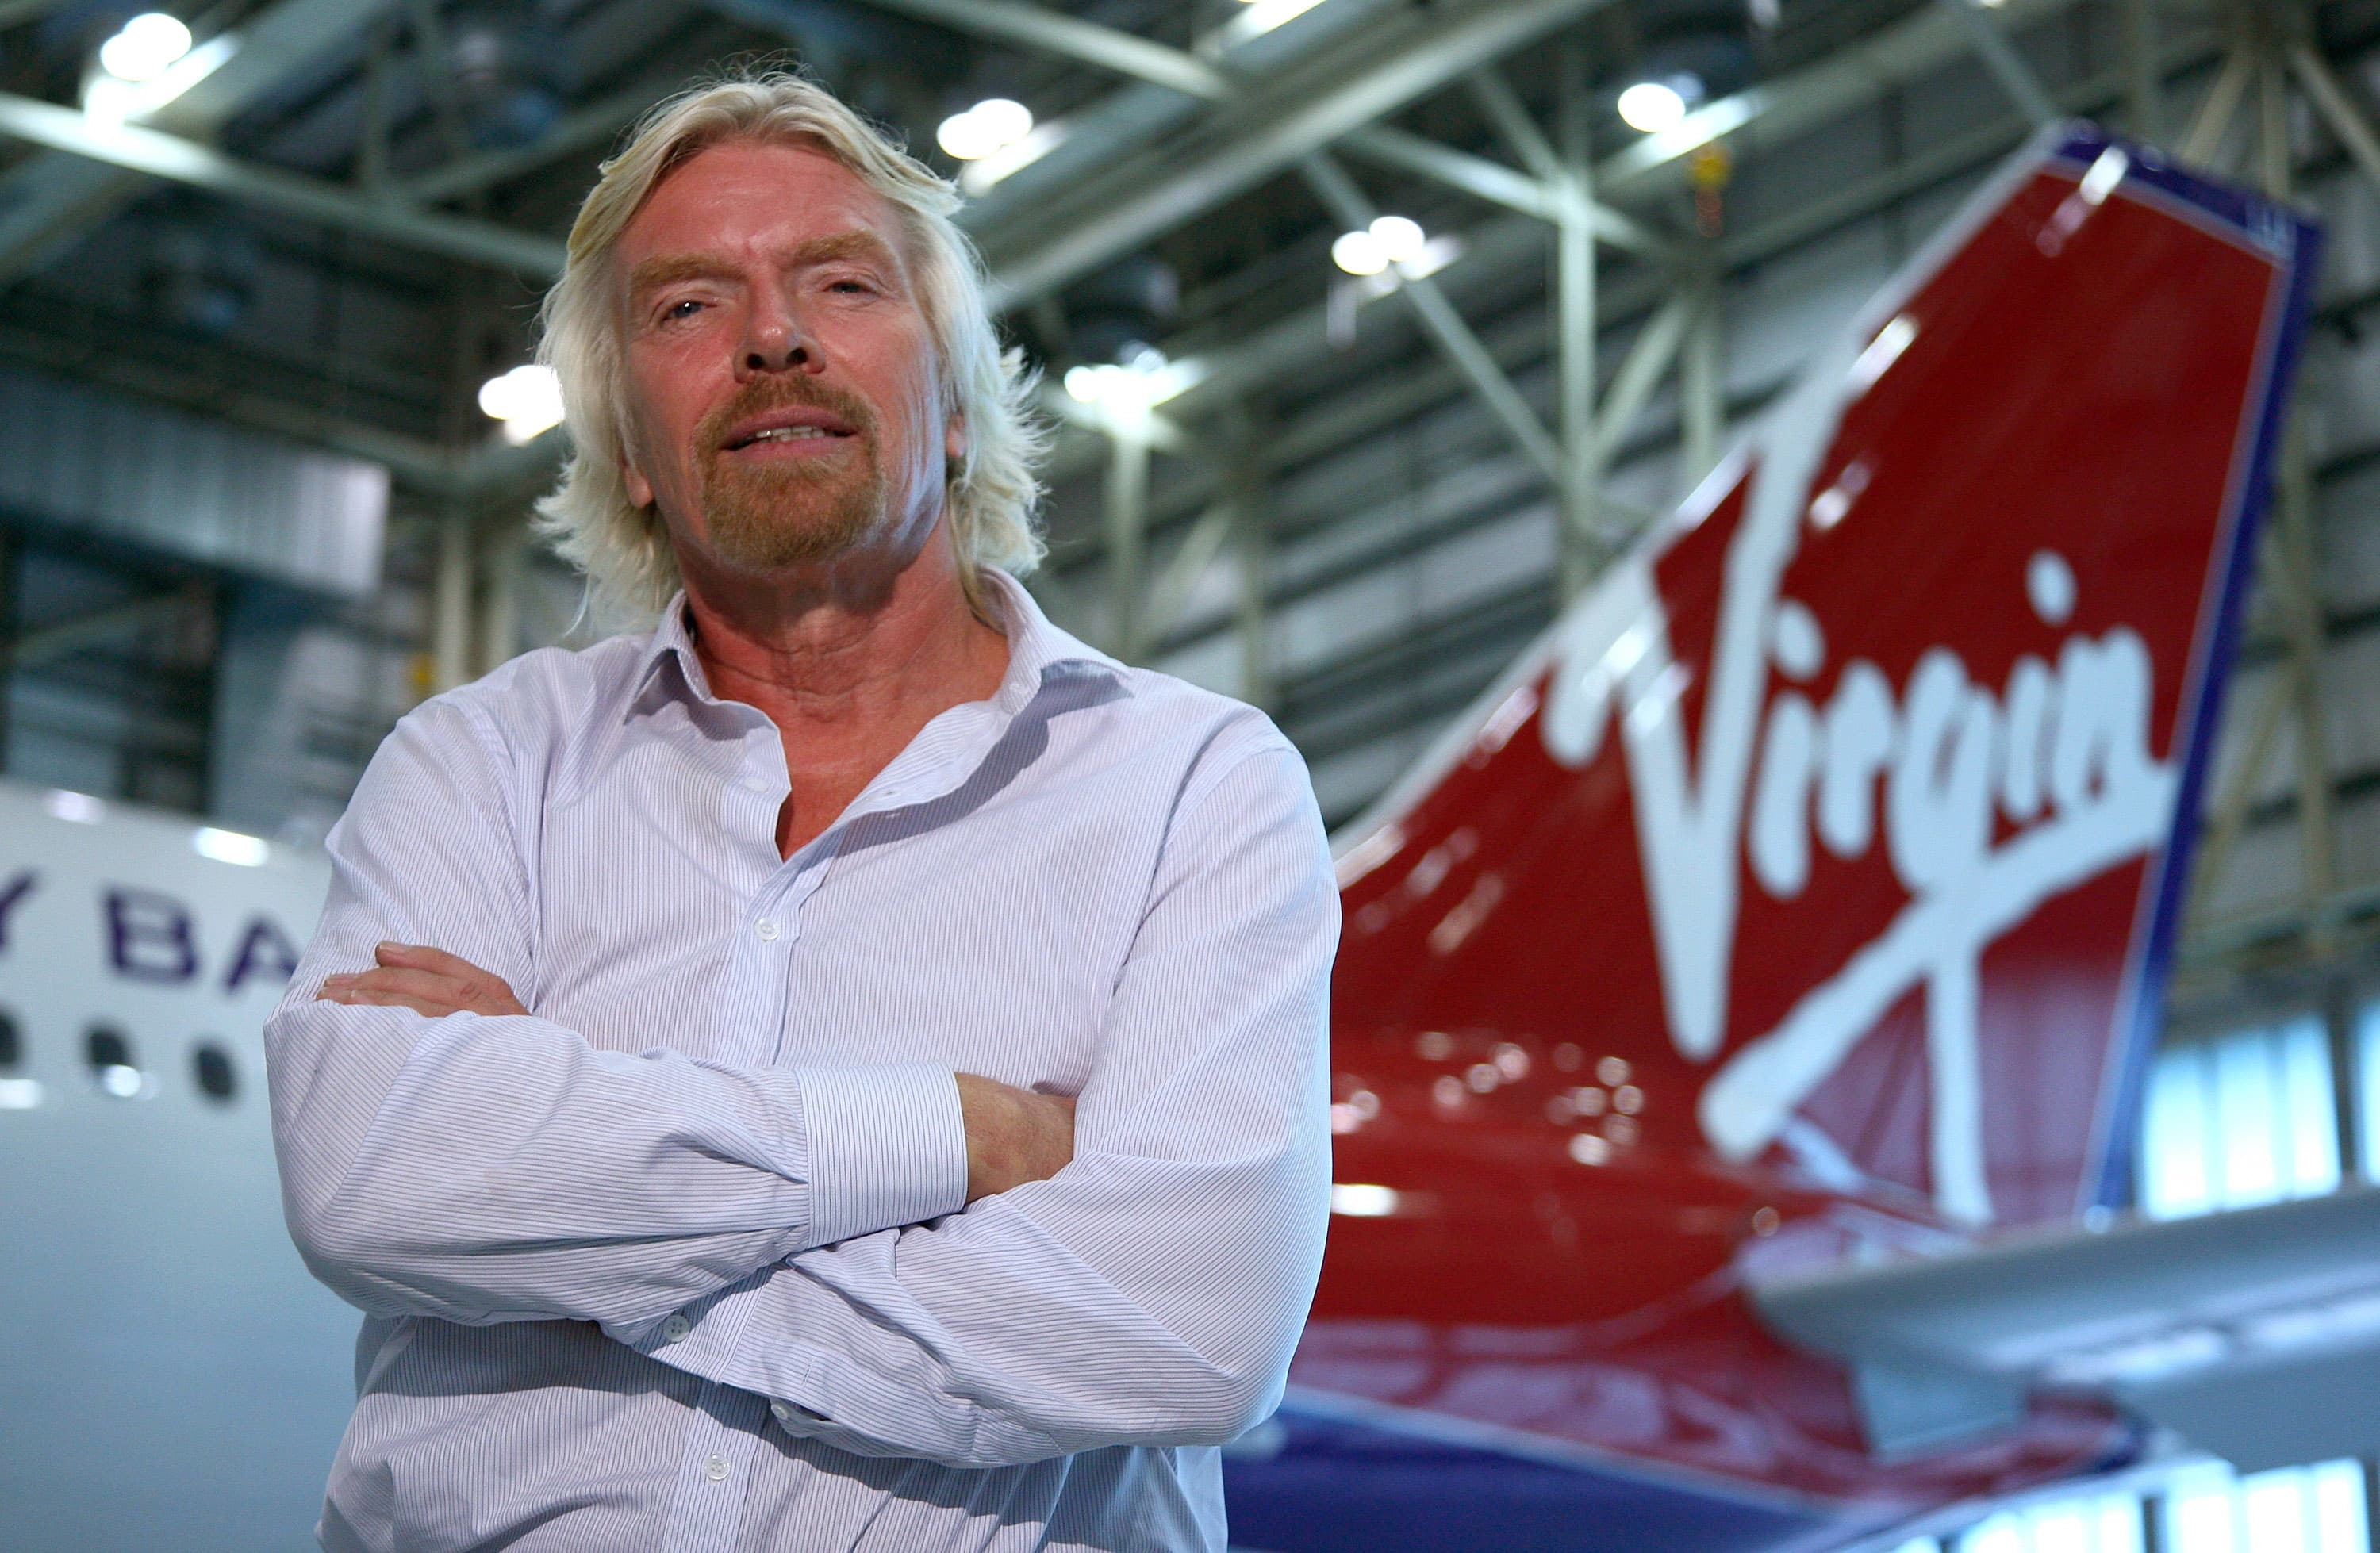 richard branson and level 5 leadership Richard branson is a leader that seeks opinions and views from other people that are working around him his core value is always to listen what other he demonstrates this leadership style by carrying a pocket book for times when he hears something interesting from people he interacts with on any level.